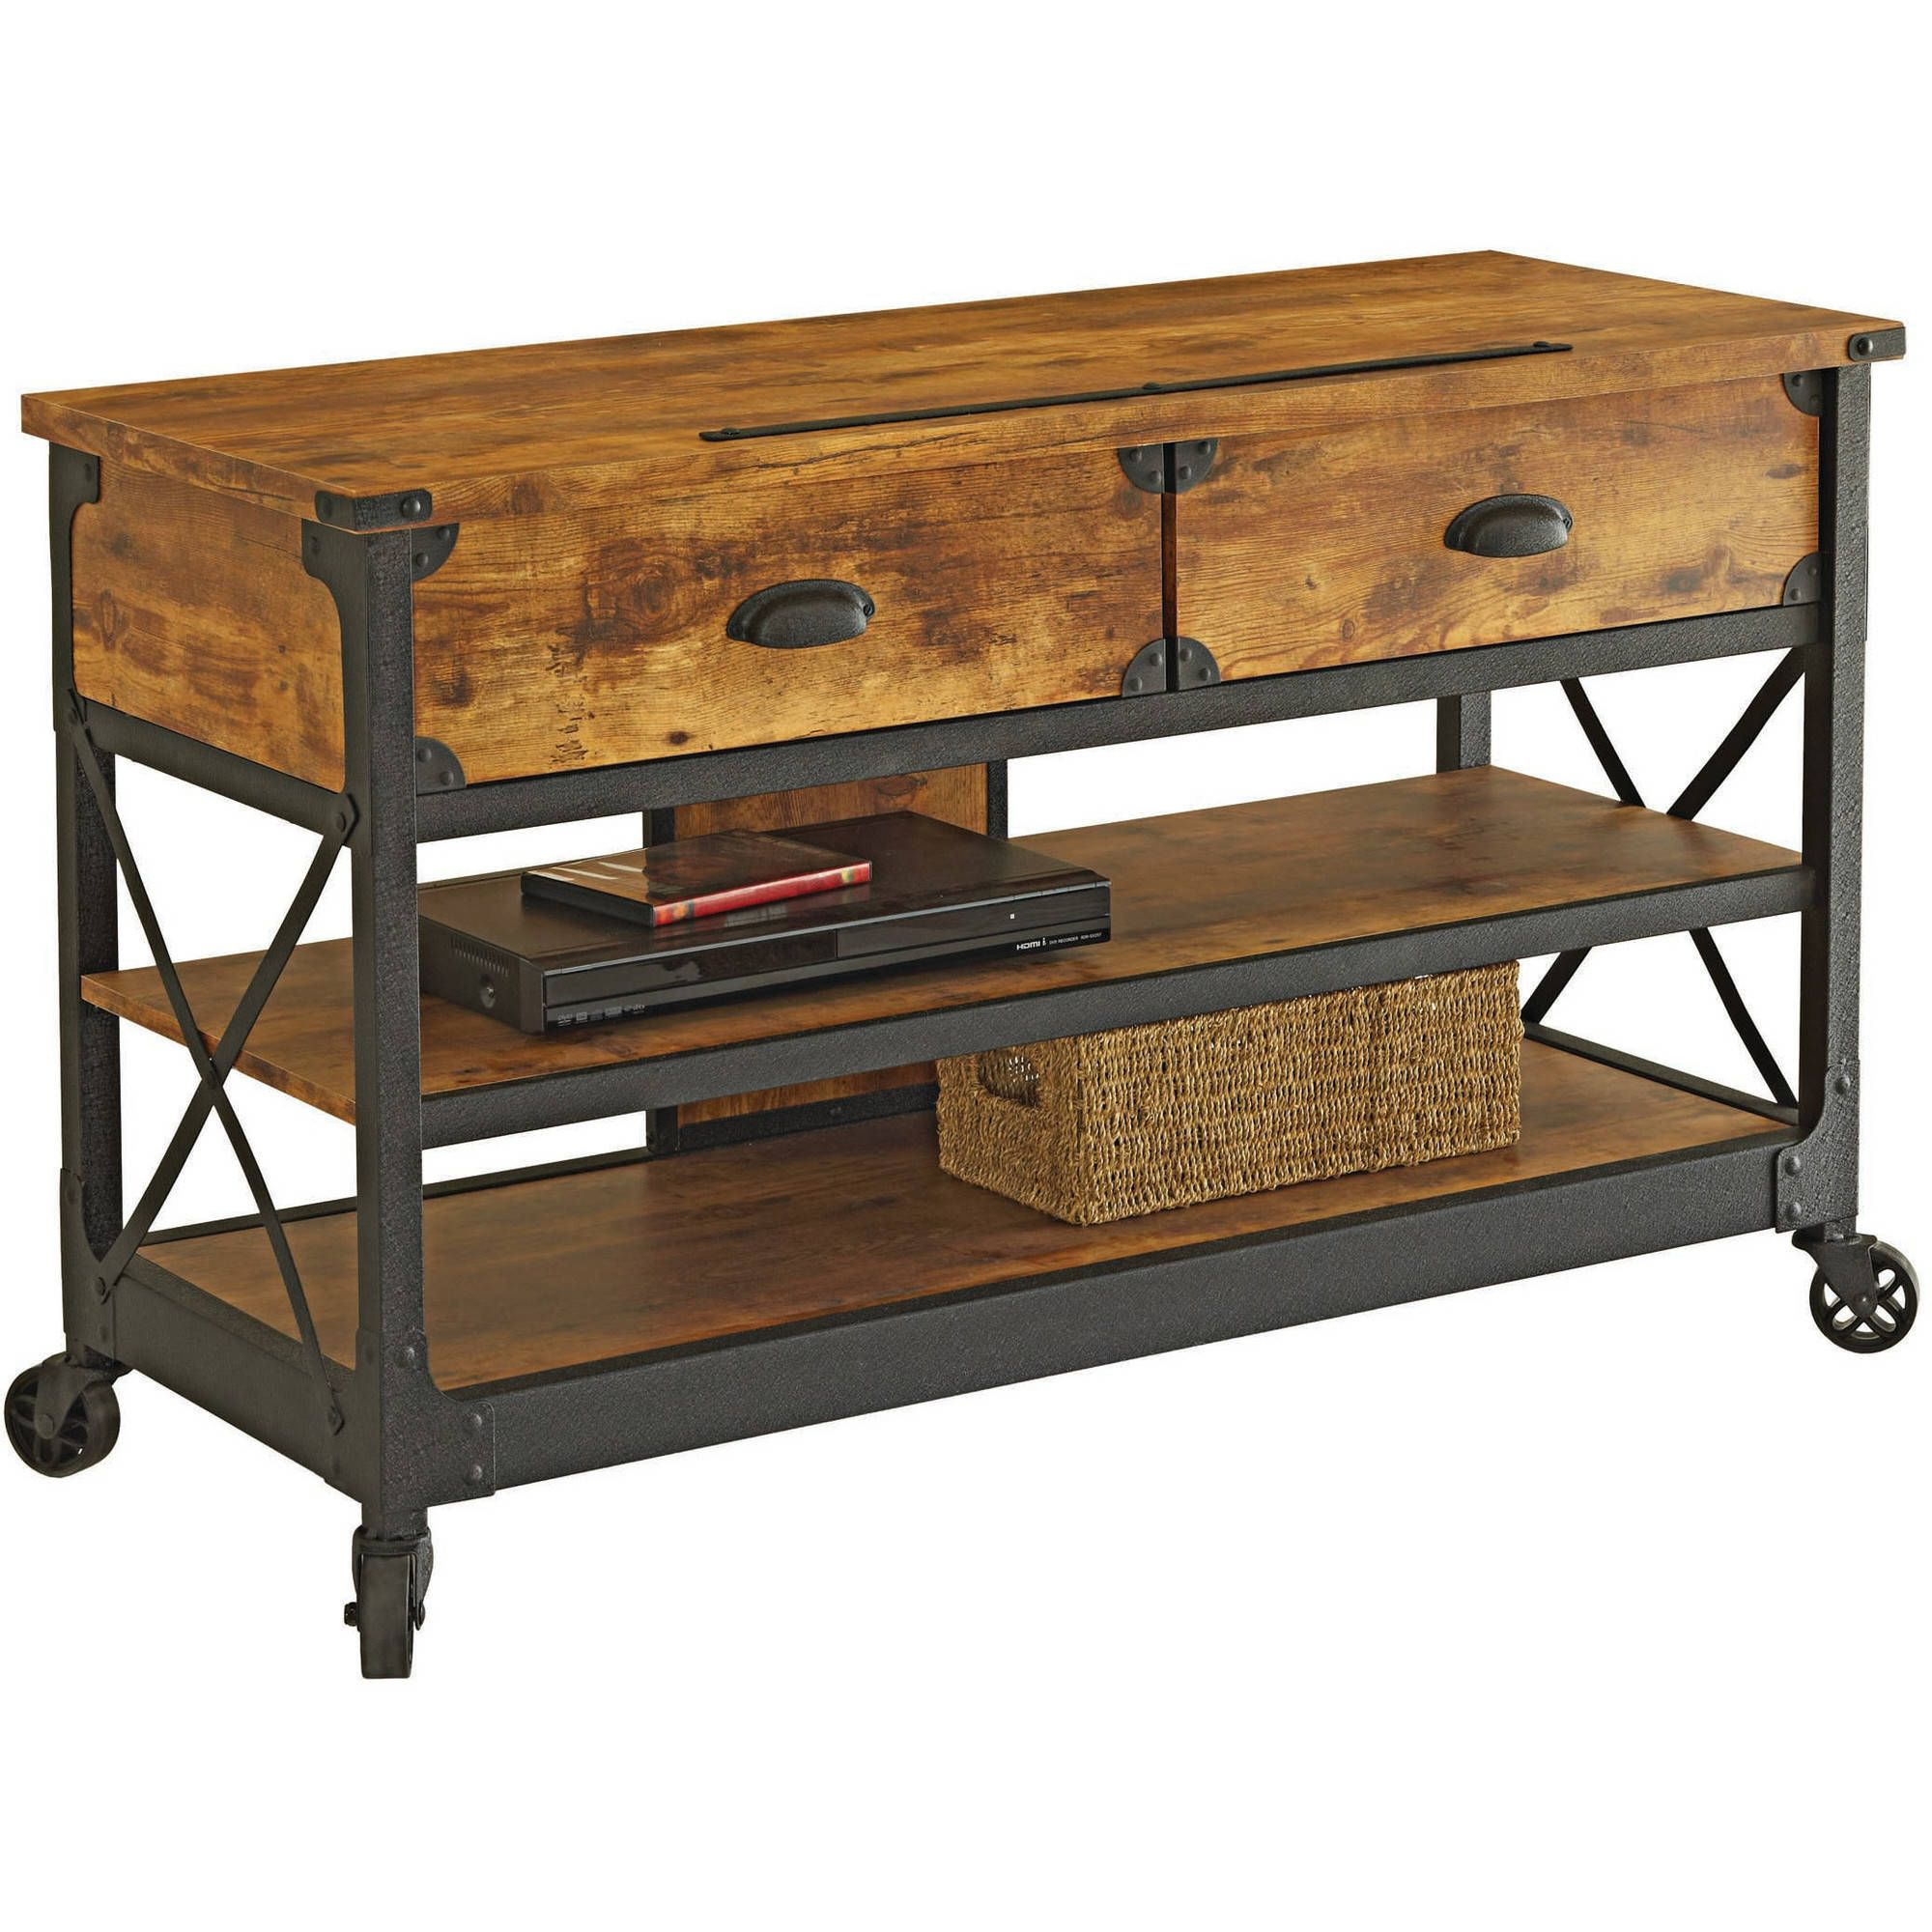 34cc37937b2ad17d00c2ebcee33a3e88 - Better Homes And Gardens Tv Stand Rustic